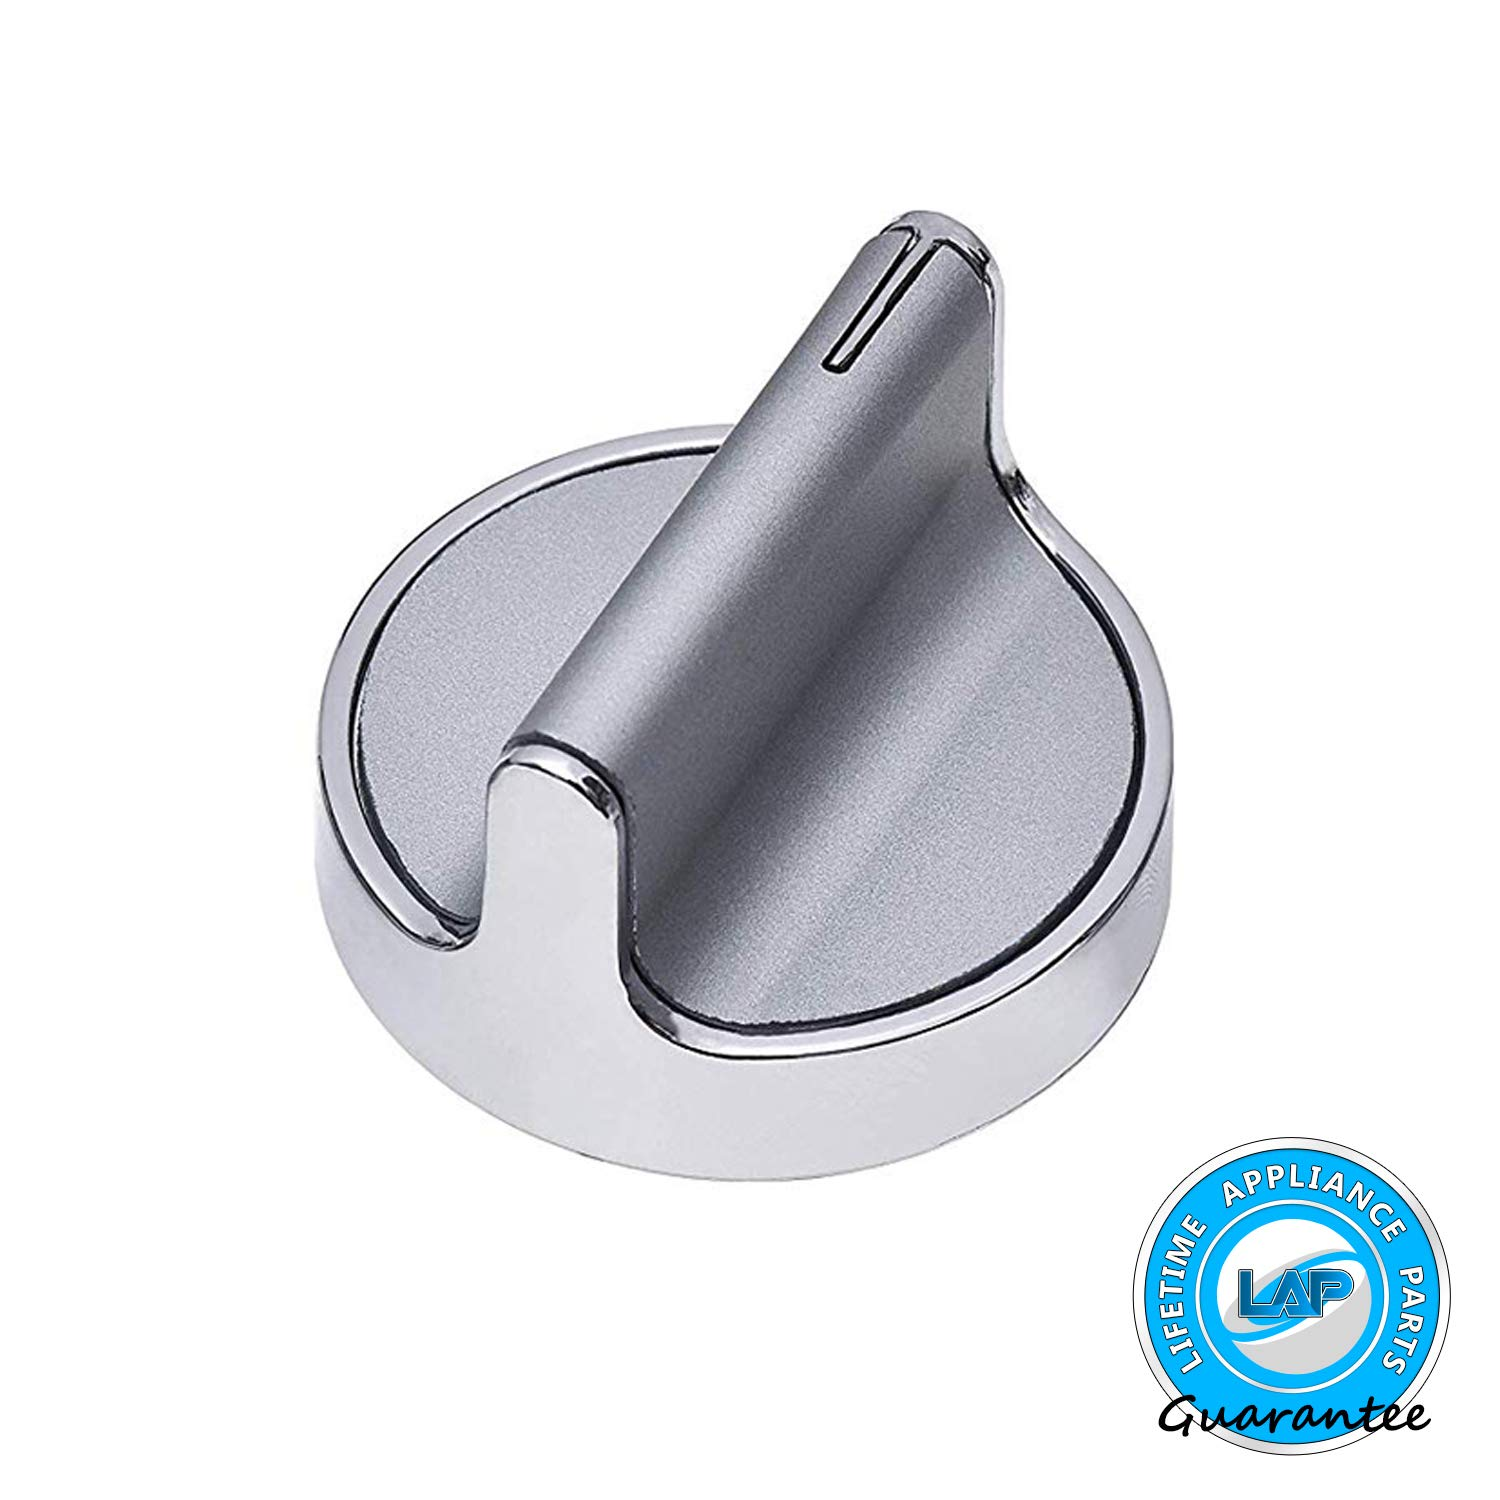 Ultra Durable Lifetime Appliance Parts W10594481 Knob for Whirlpool Stove/Range